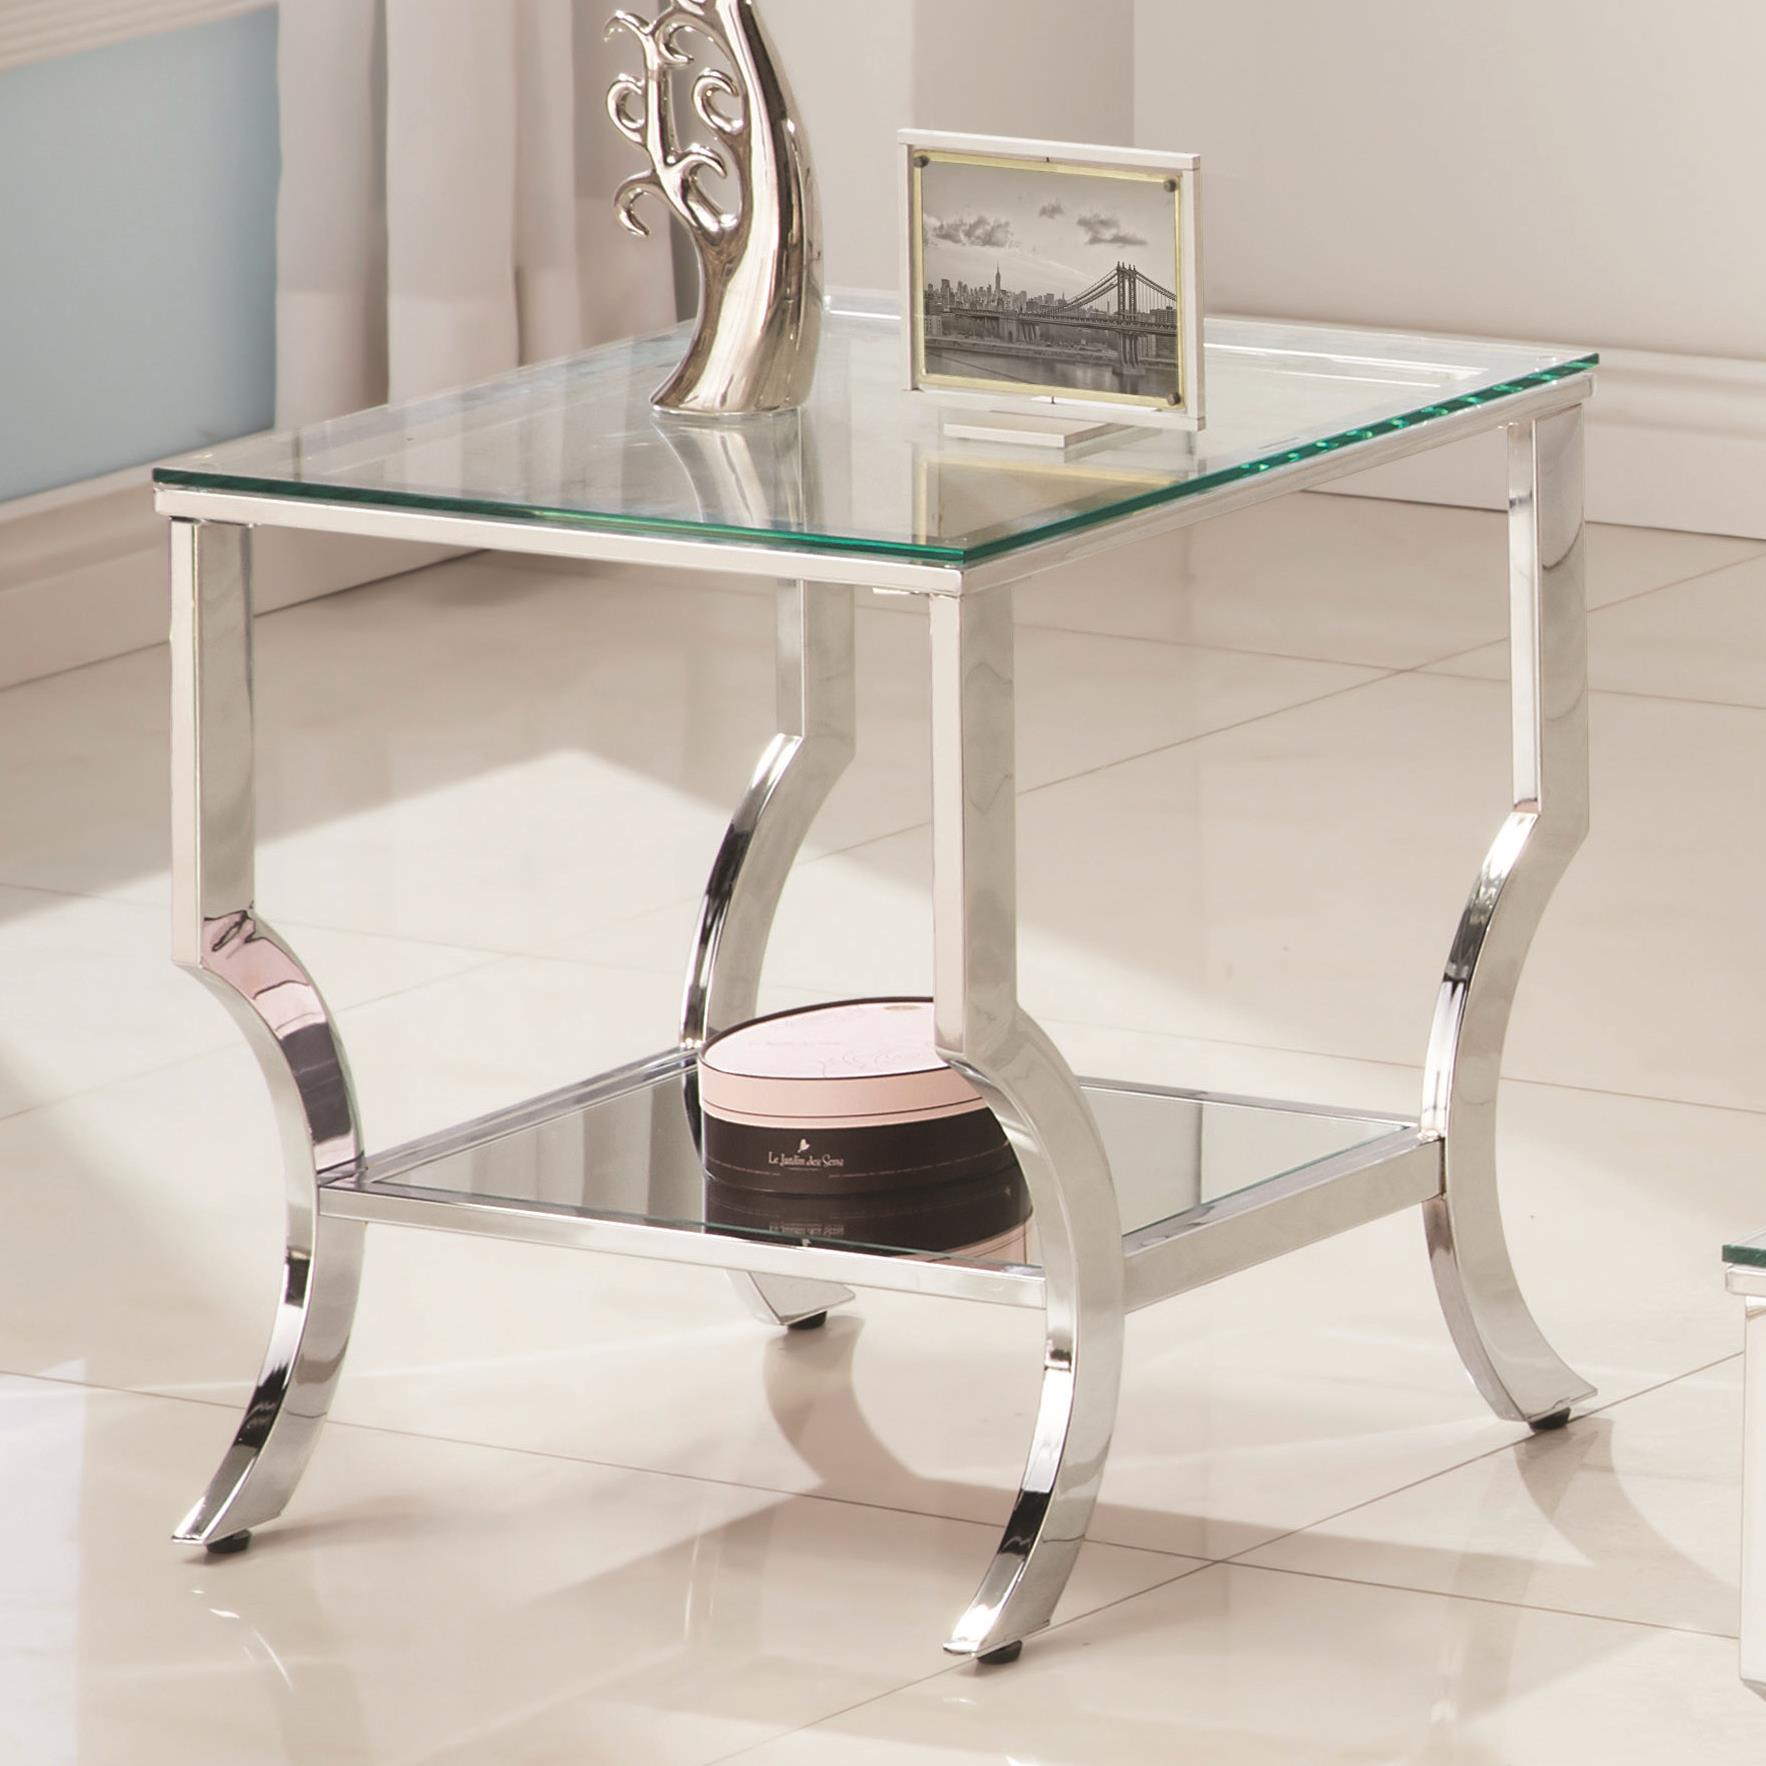 720337 end table